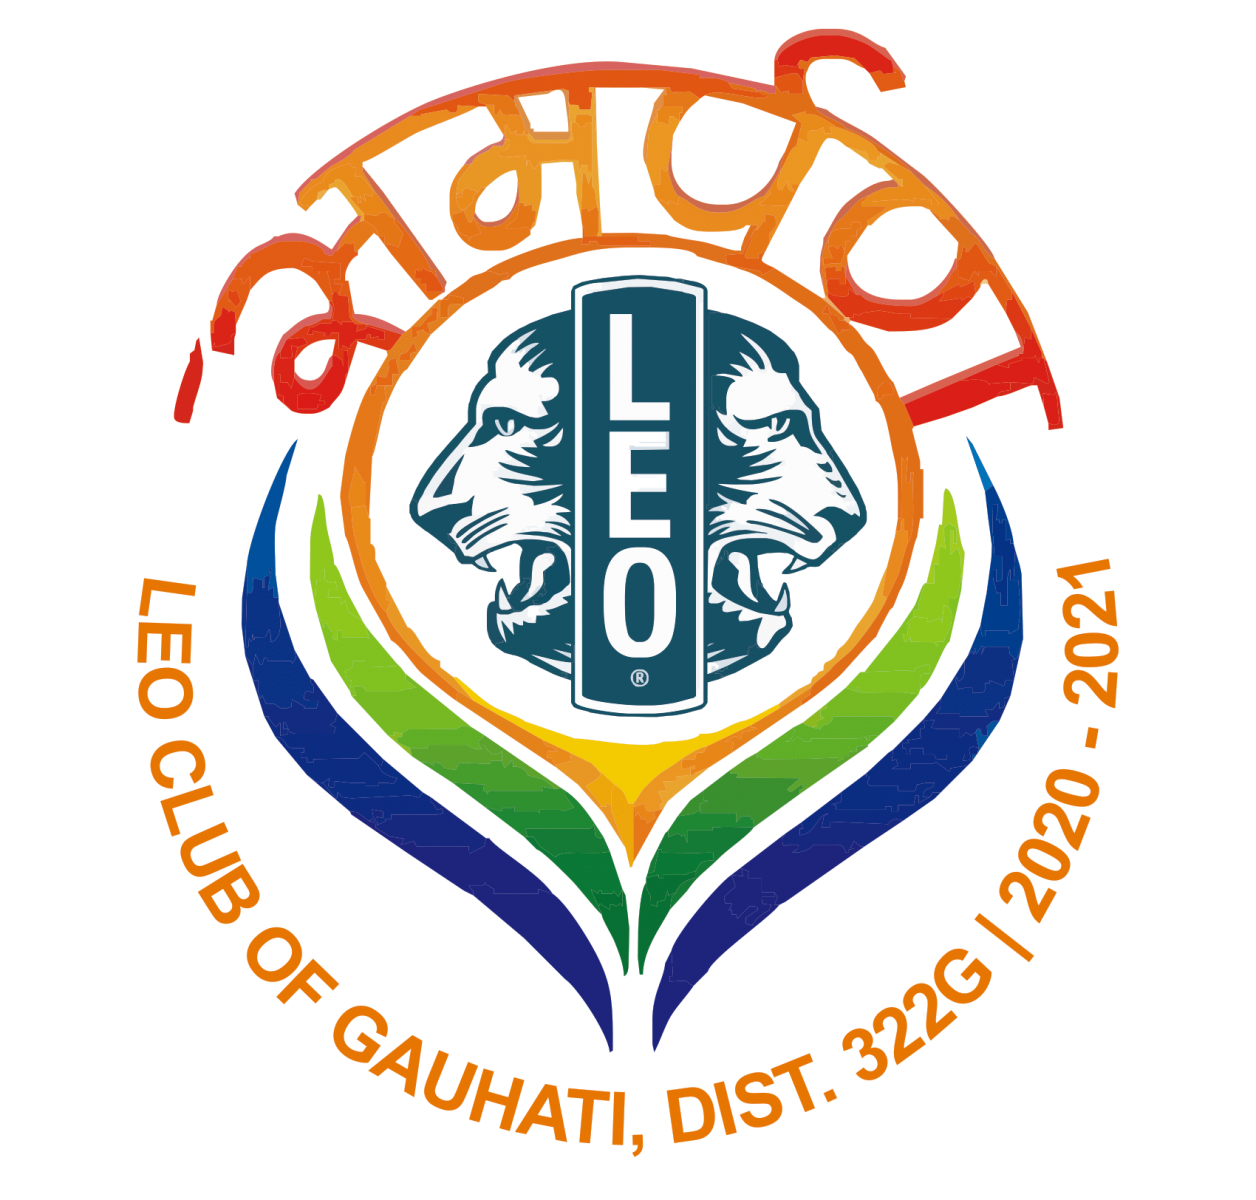 Leo Club of Gauahti Logo 2020-21